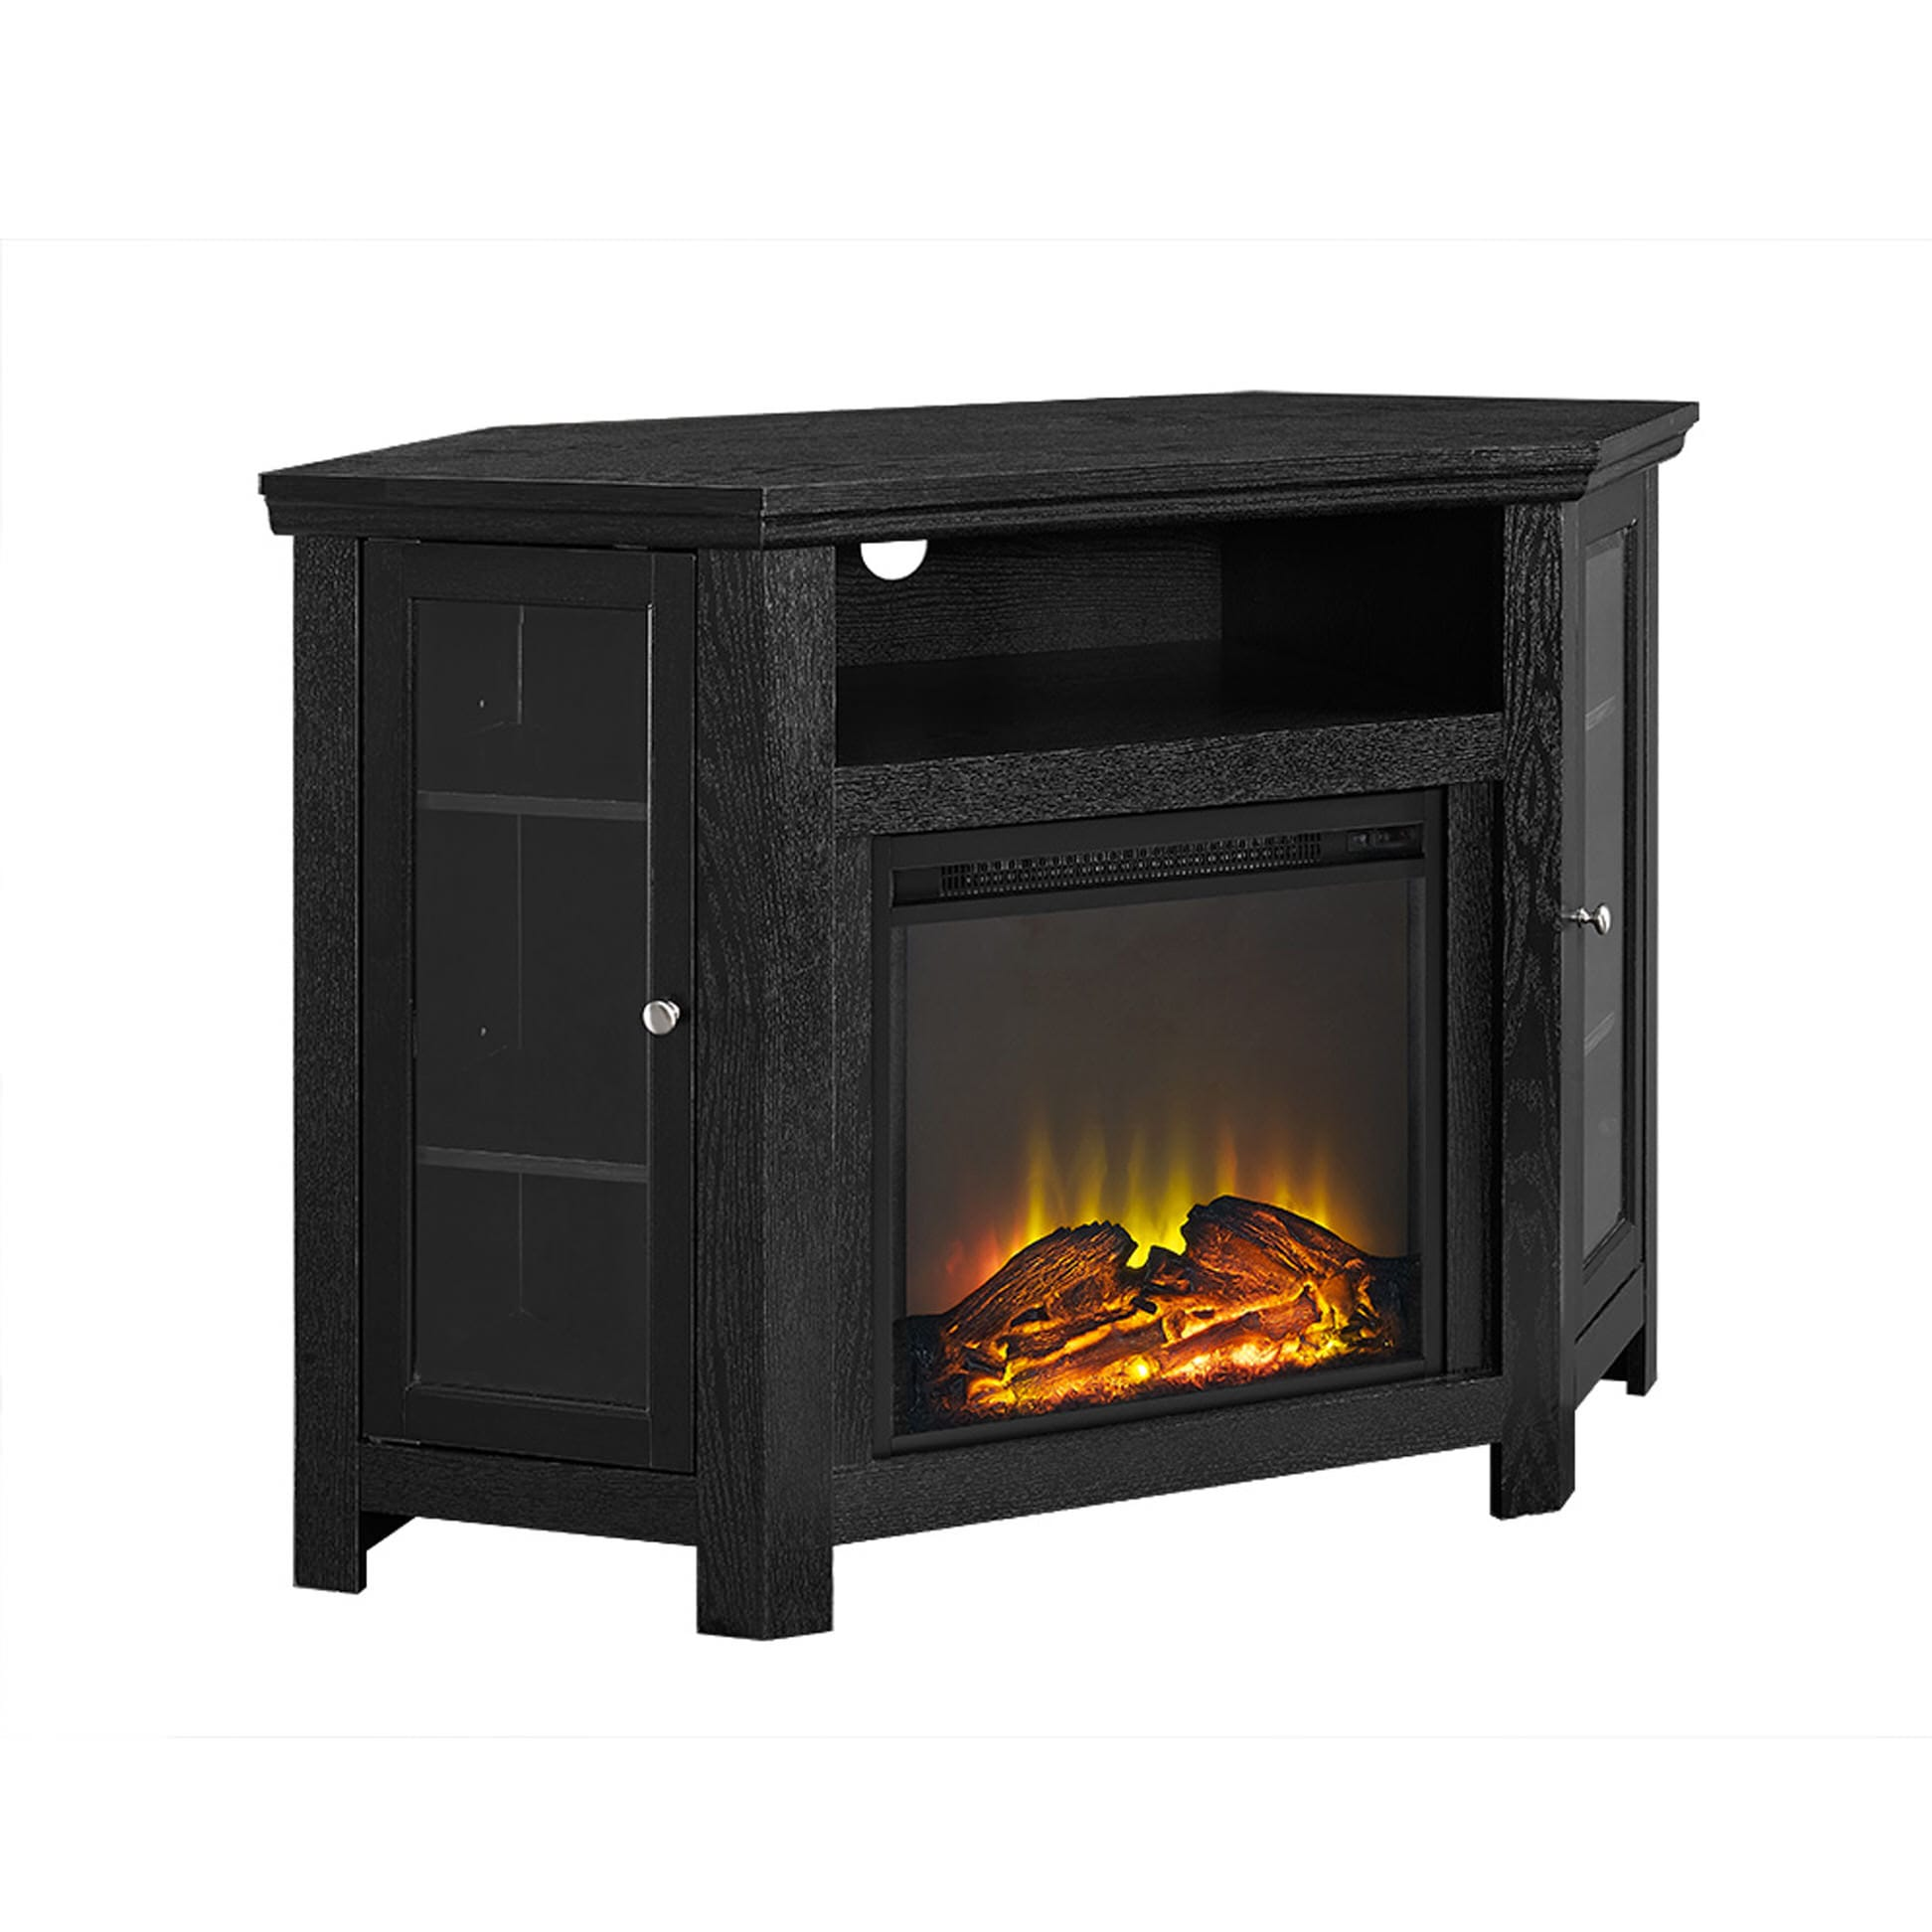 jackson 48 inch corner fireplace tv stand black by walker edison. Black Bedroom Furniture Sets. Home Design Ideas